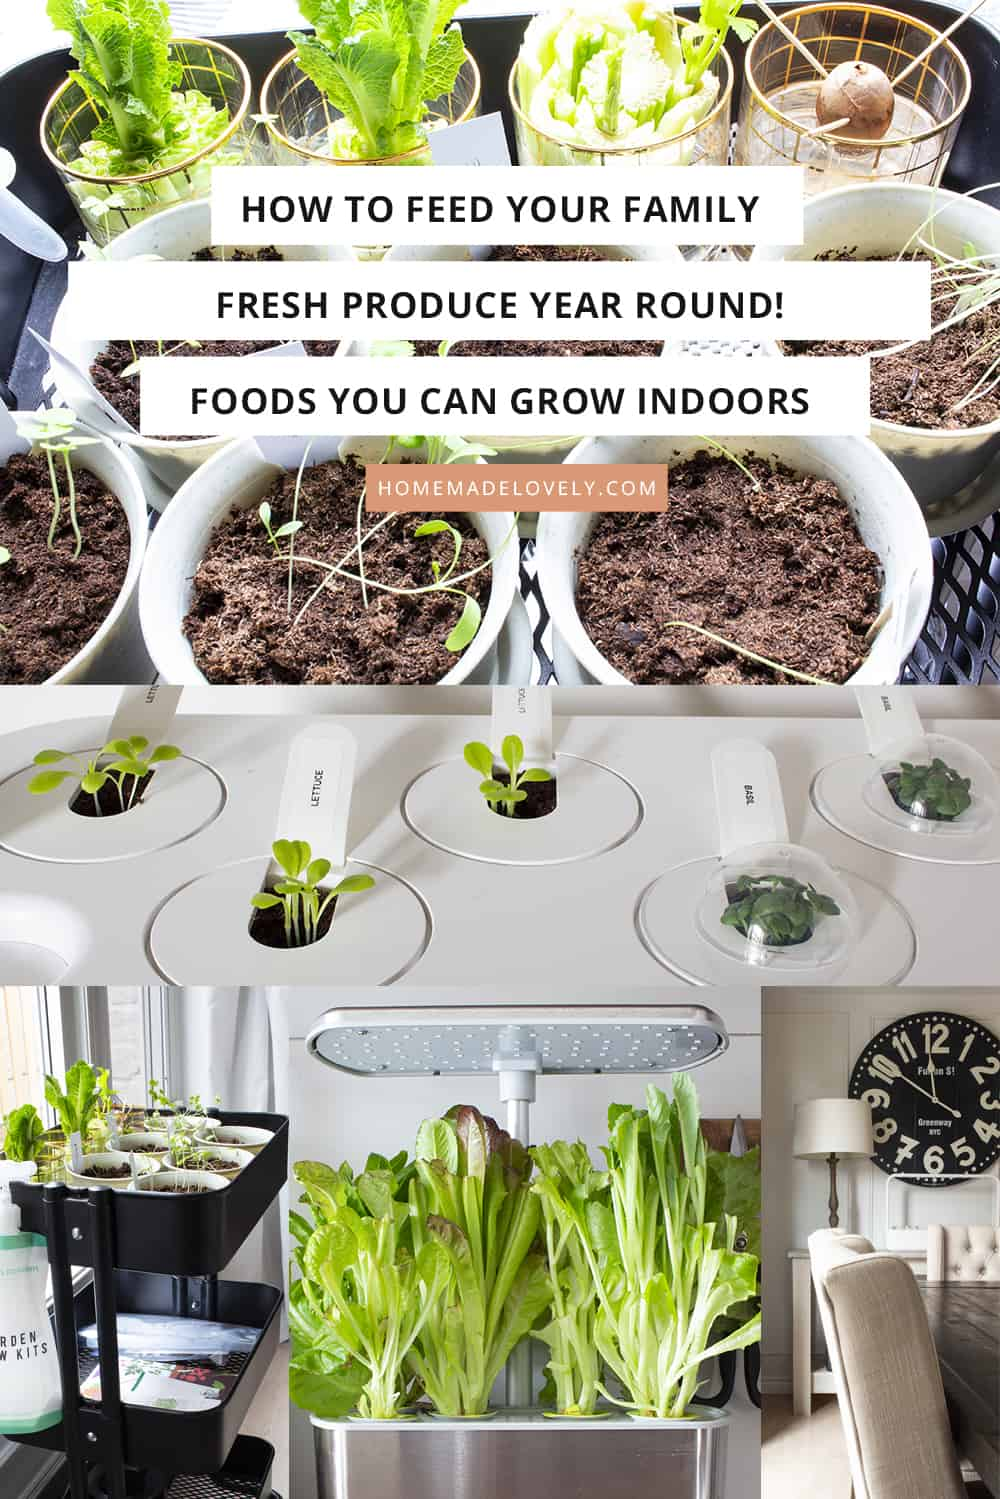 How to Grow Food Indoors on text overlay over indoor food plant photos